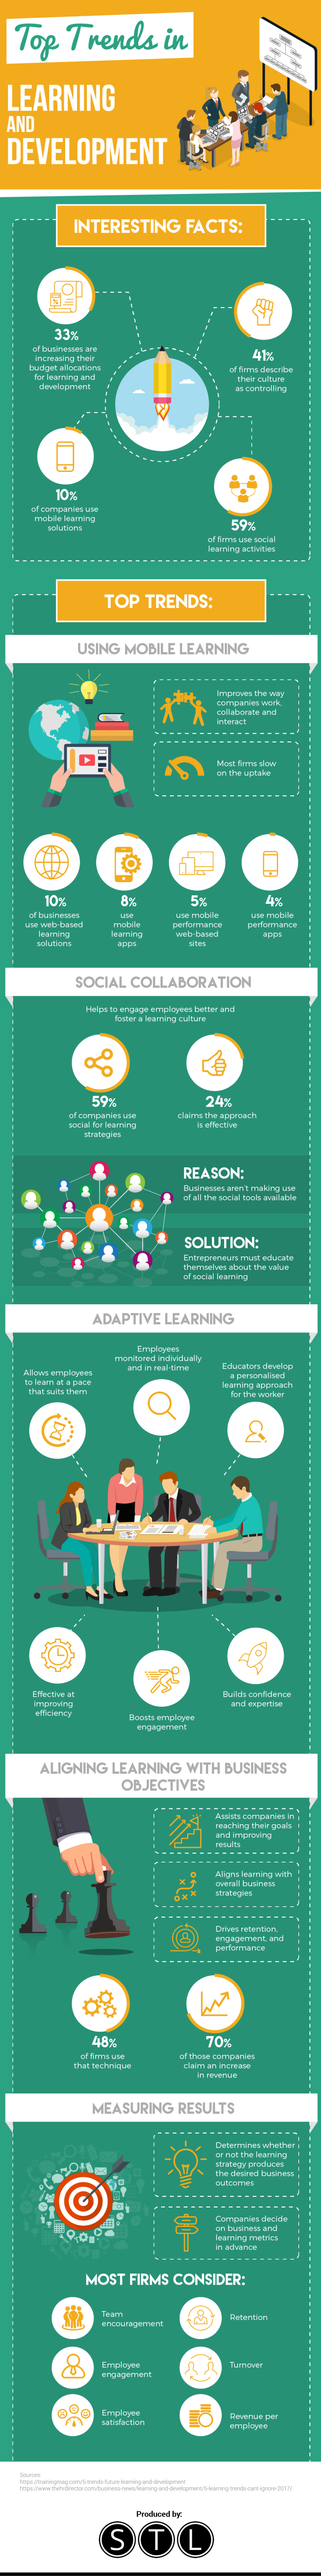 Top Trends in Learning and Development